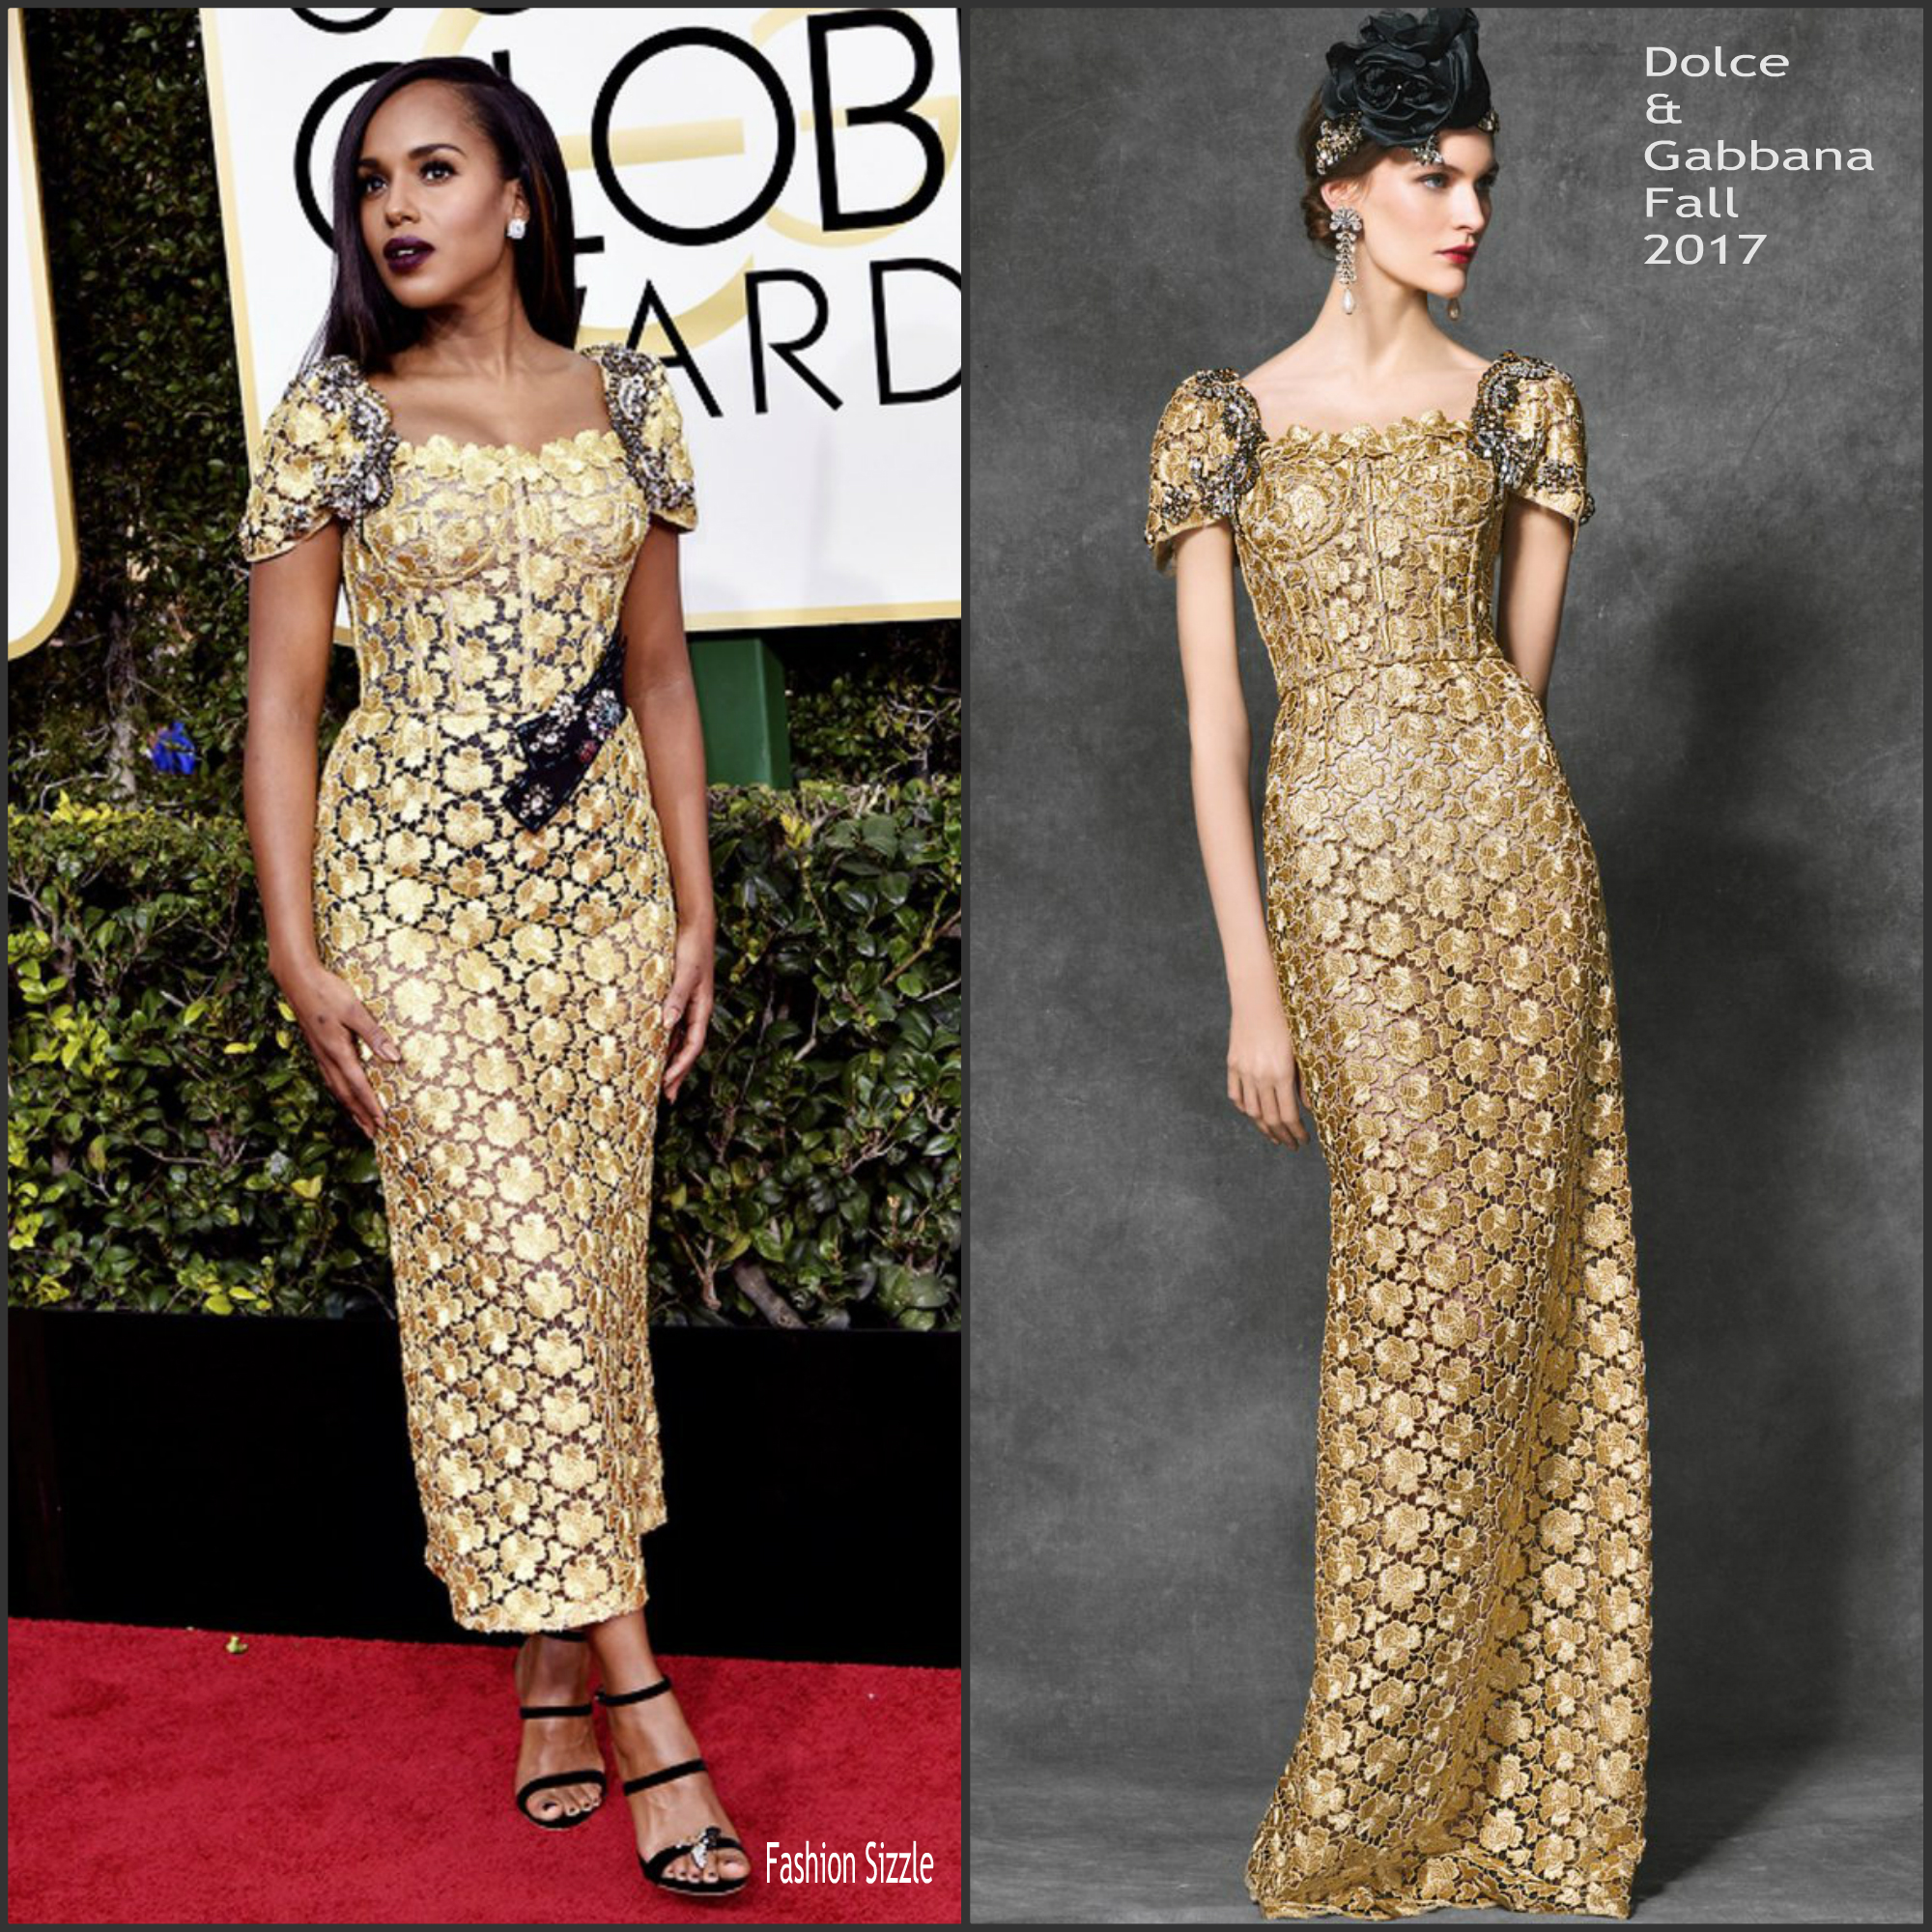 kerry-washington-in-dolce-gabbana-at-the-2017-golden-globe-awards